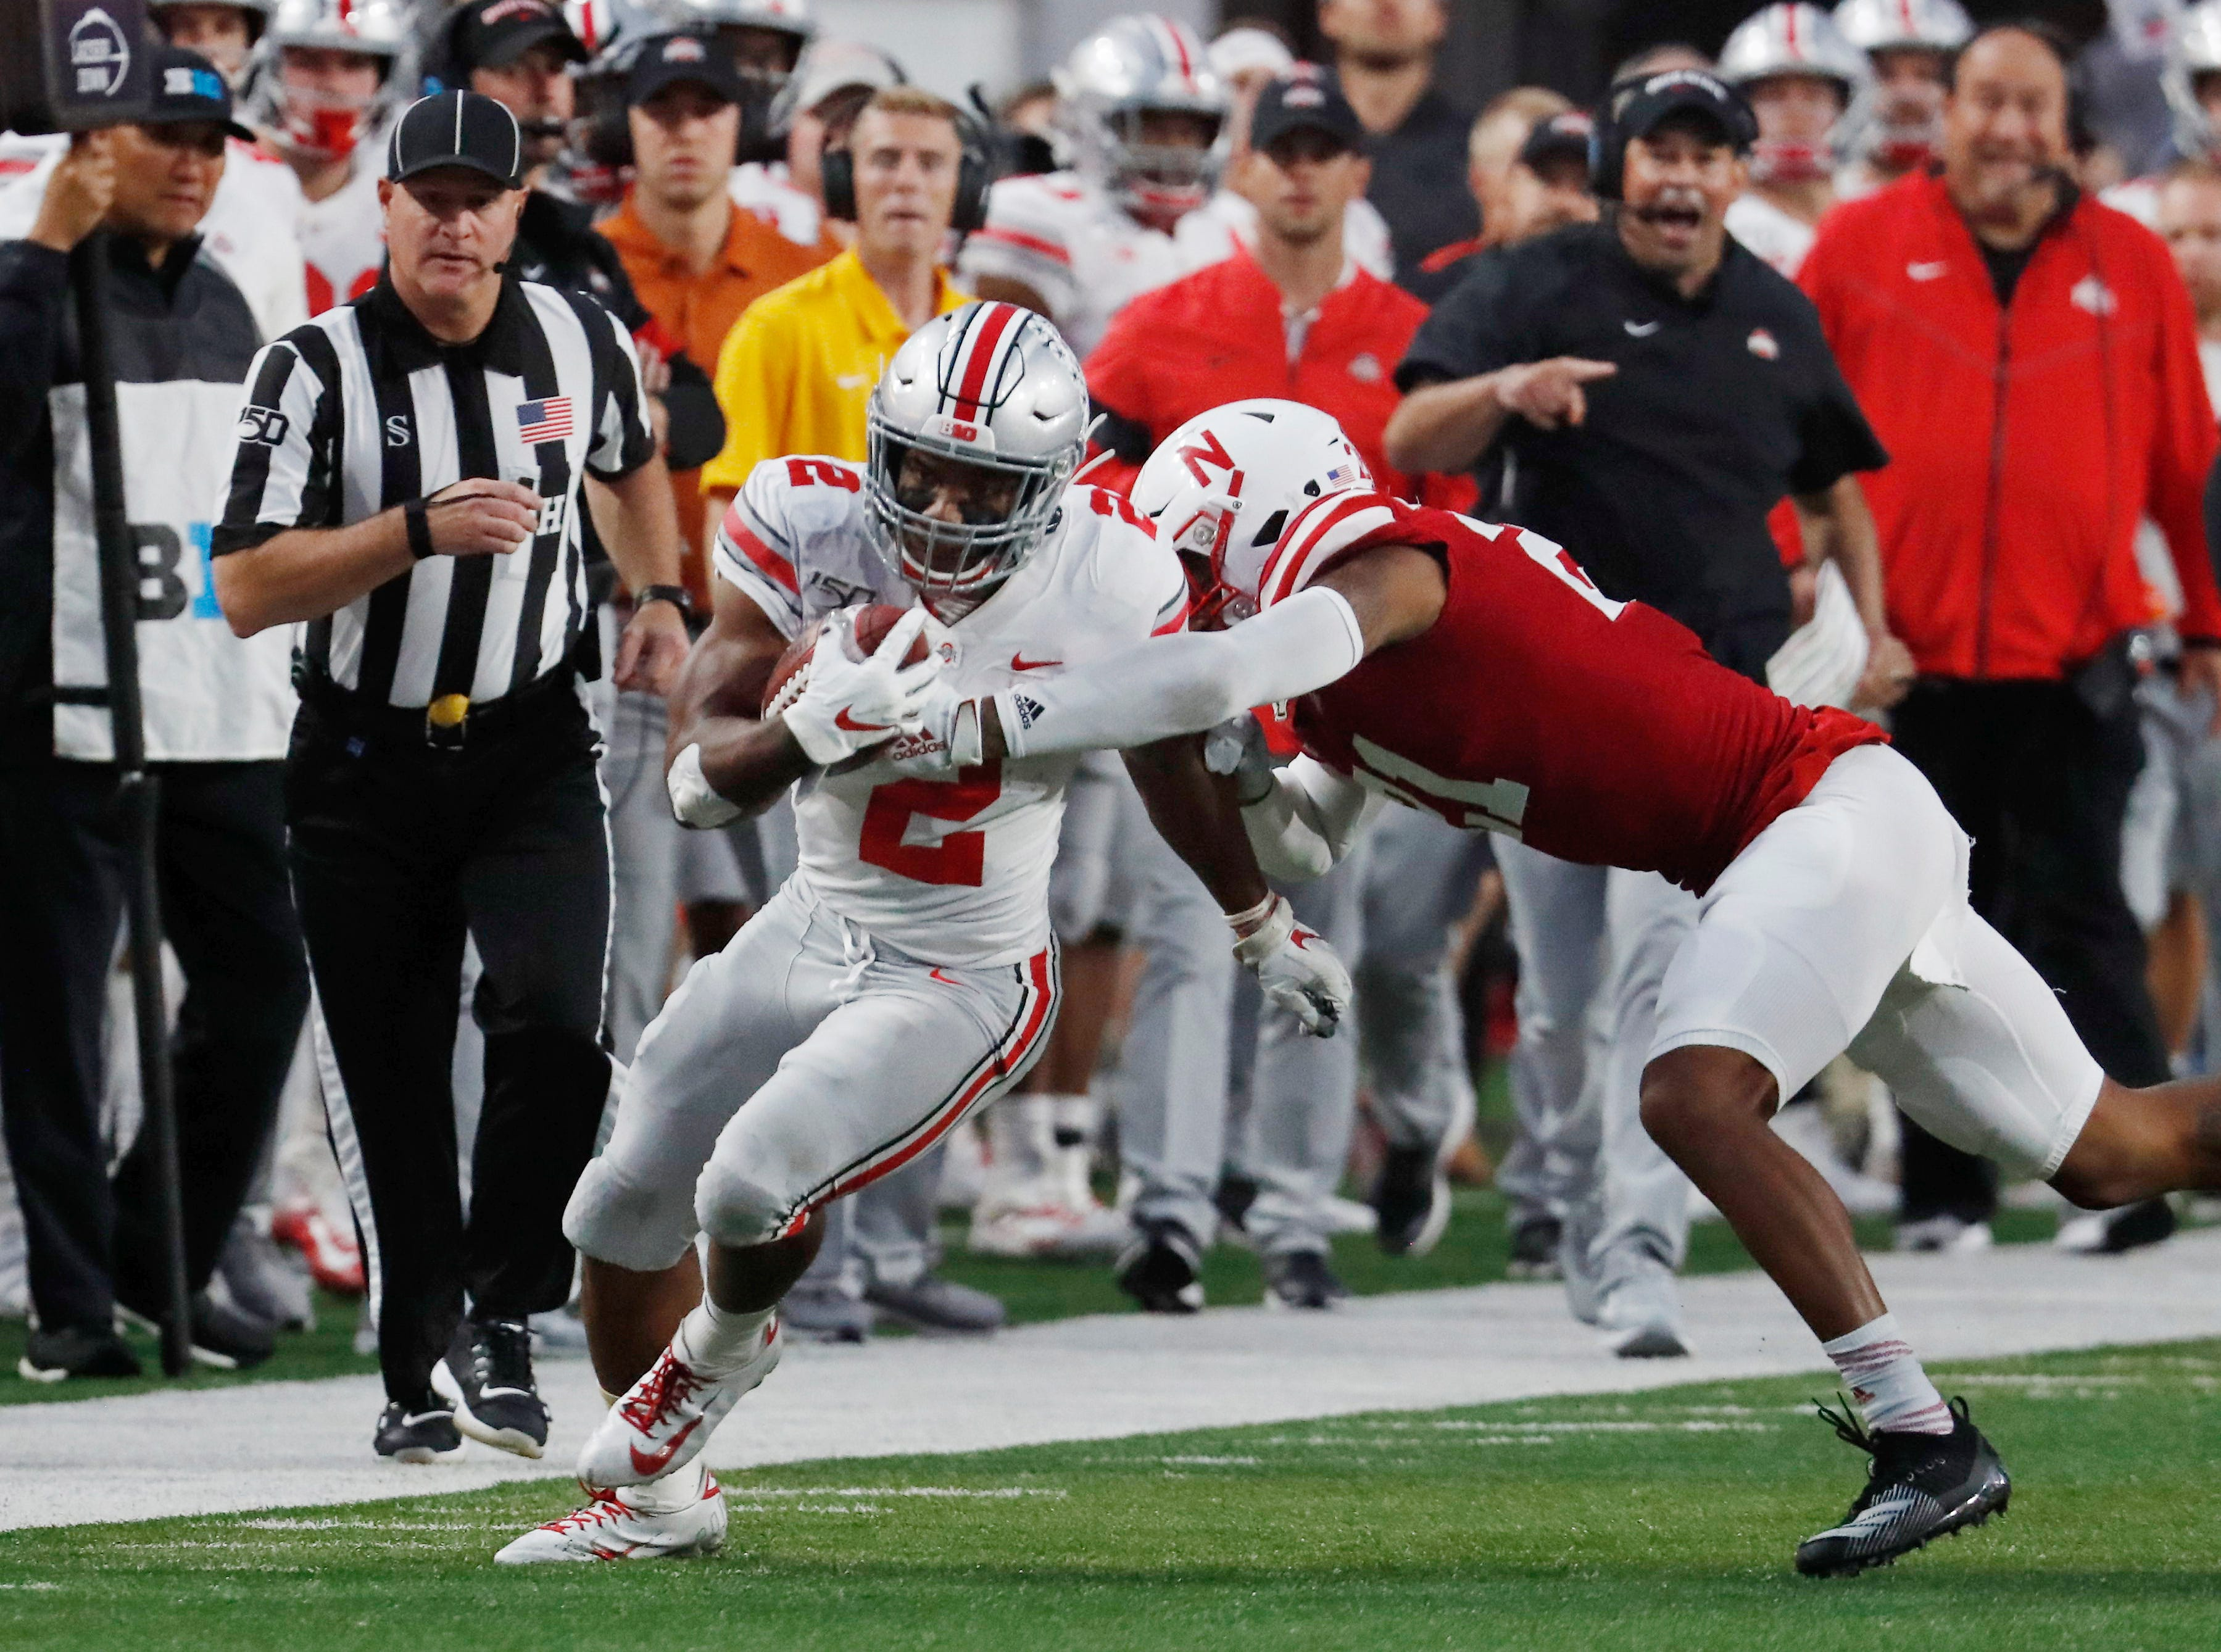 Ohio State stays No. 1, but Big Ten rivals Wisconsin and Michigan fall in NCAA Re-Rank 1-130